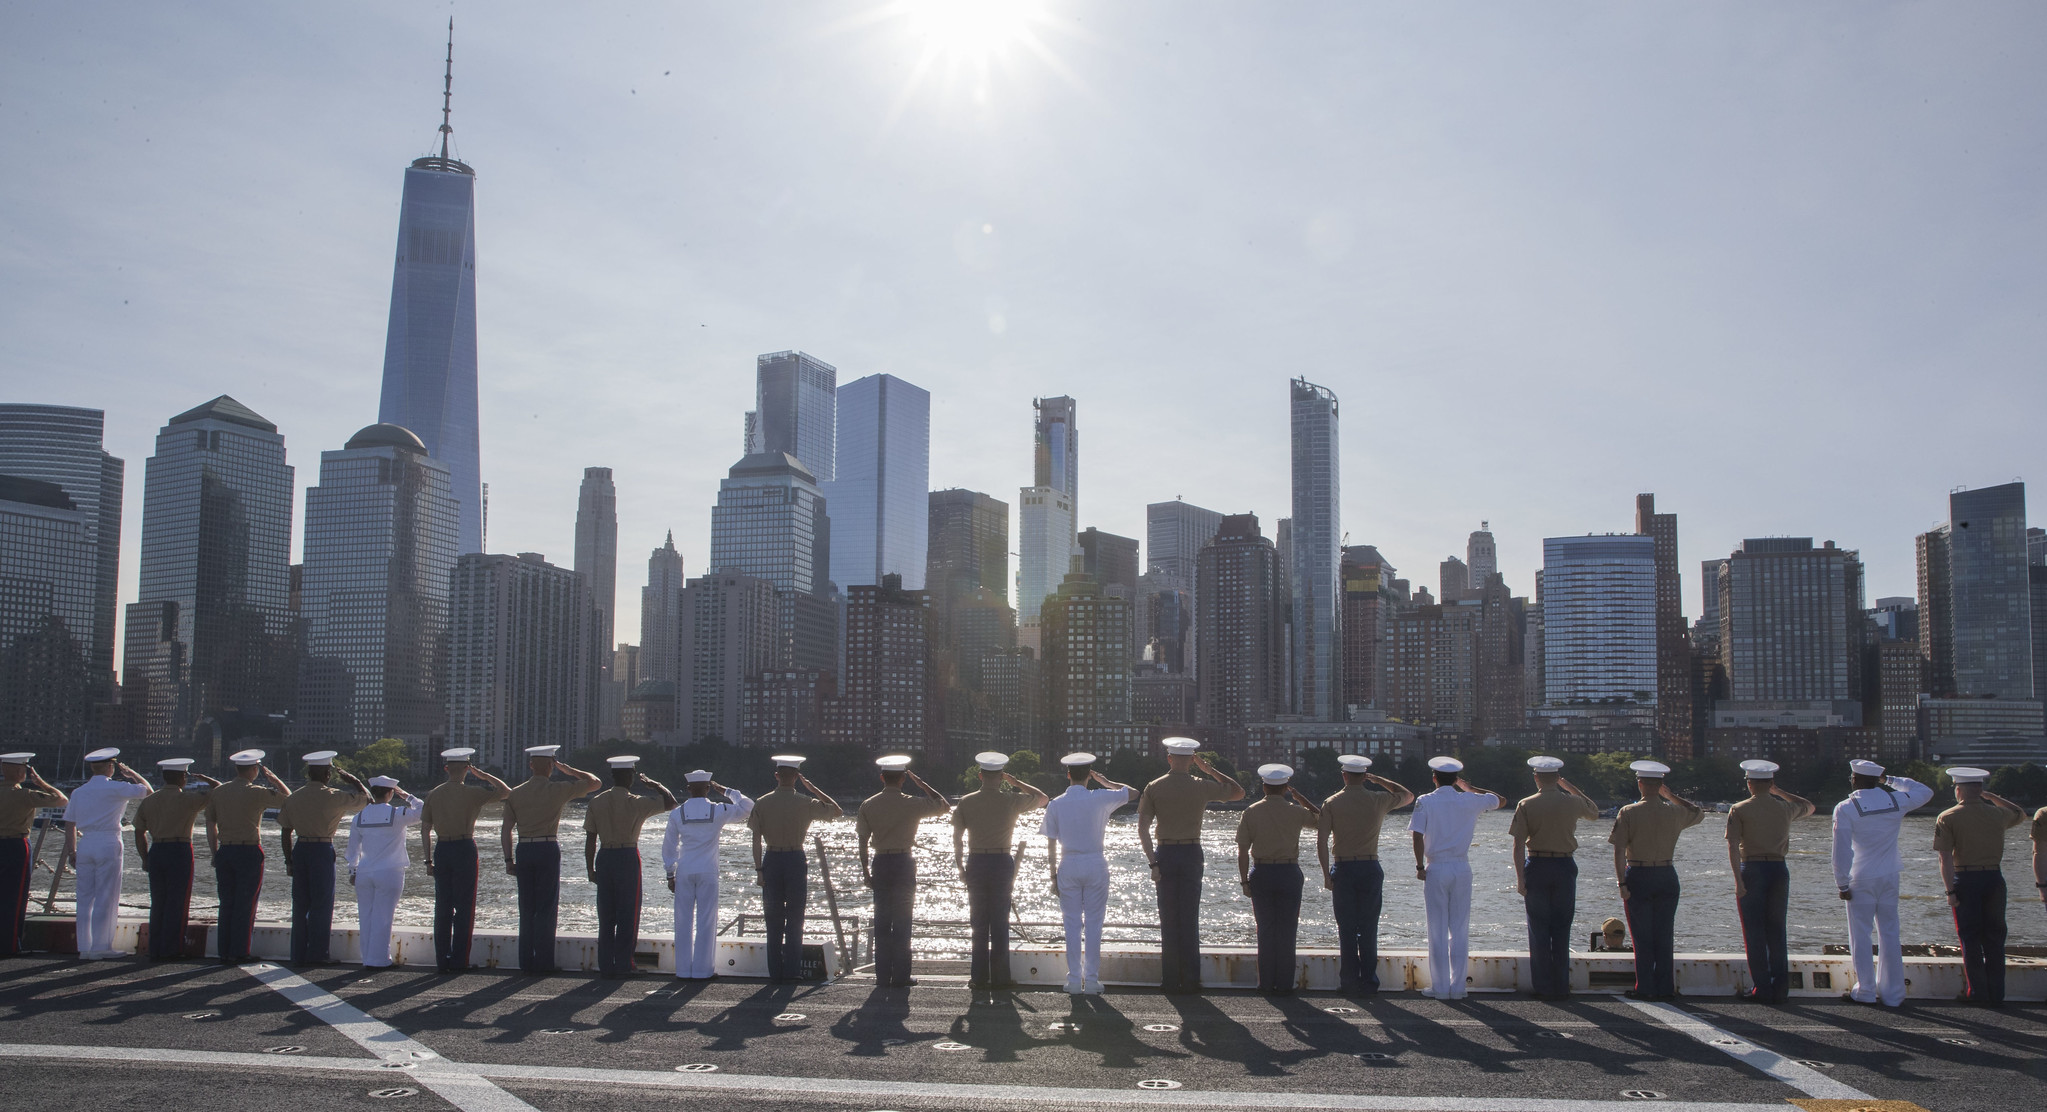 Sailors and Marines salute the Freedom Tower from the flight deck of the amphibious transport dock ship USS New York (LPD 21) on May 22, 2019, while transiting the Hudson River as they head to a pier in Manhattan during Fleet Week New York. (Mass Communication Specialist 2nd Class Ryan Seelbach/Navy)